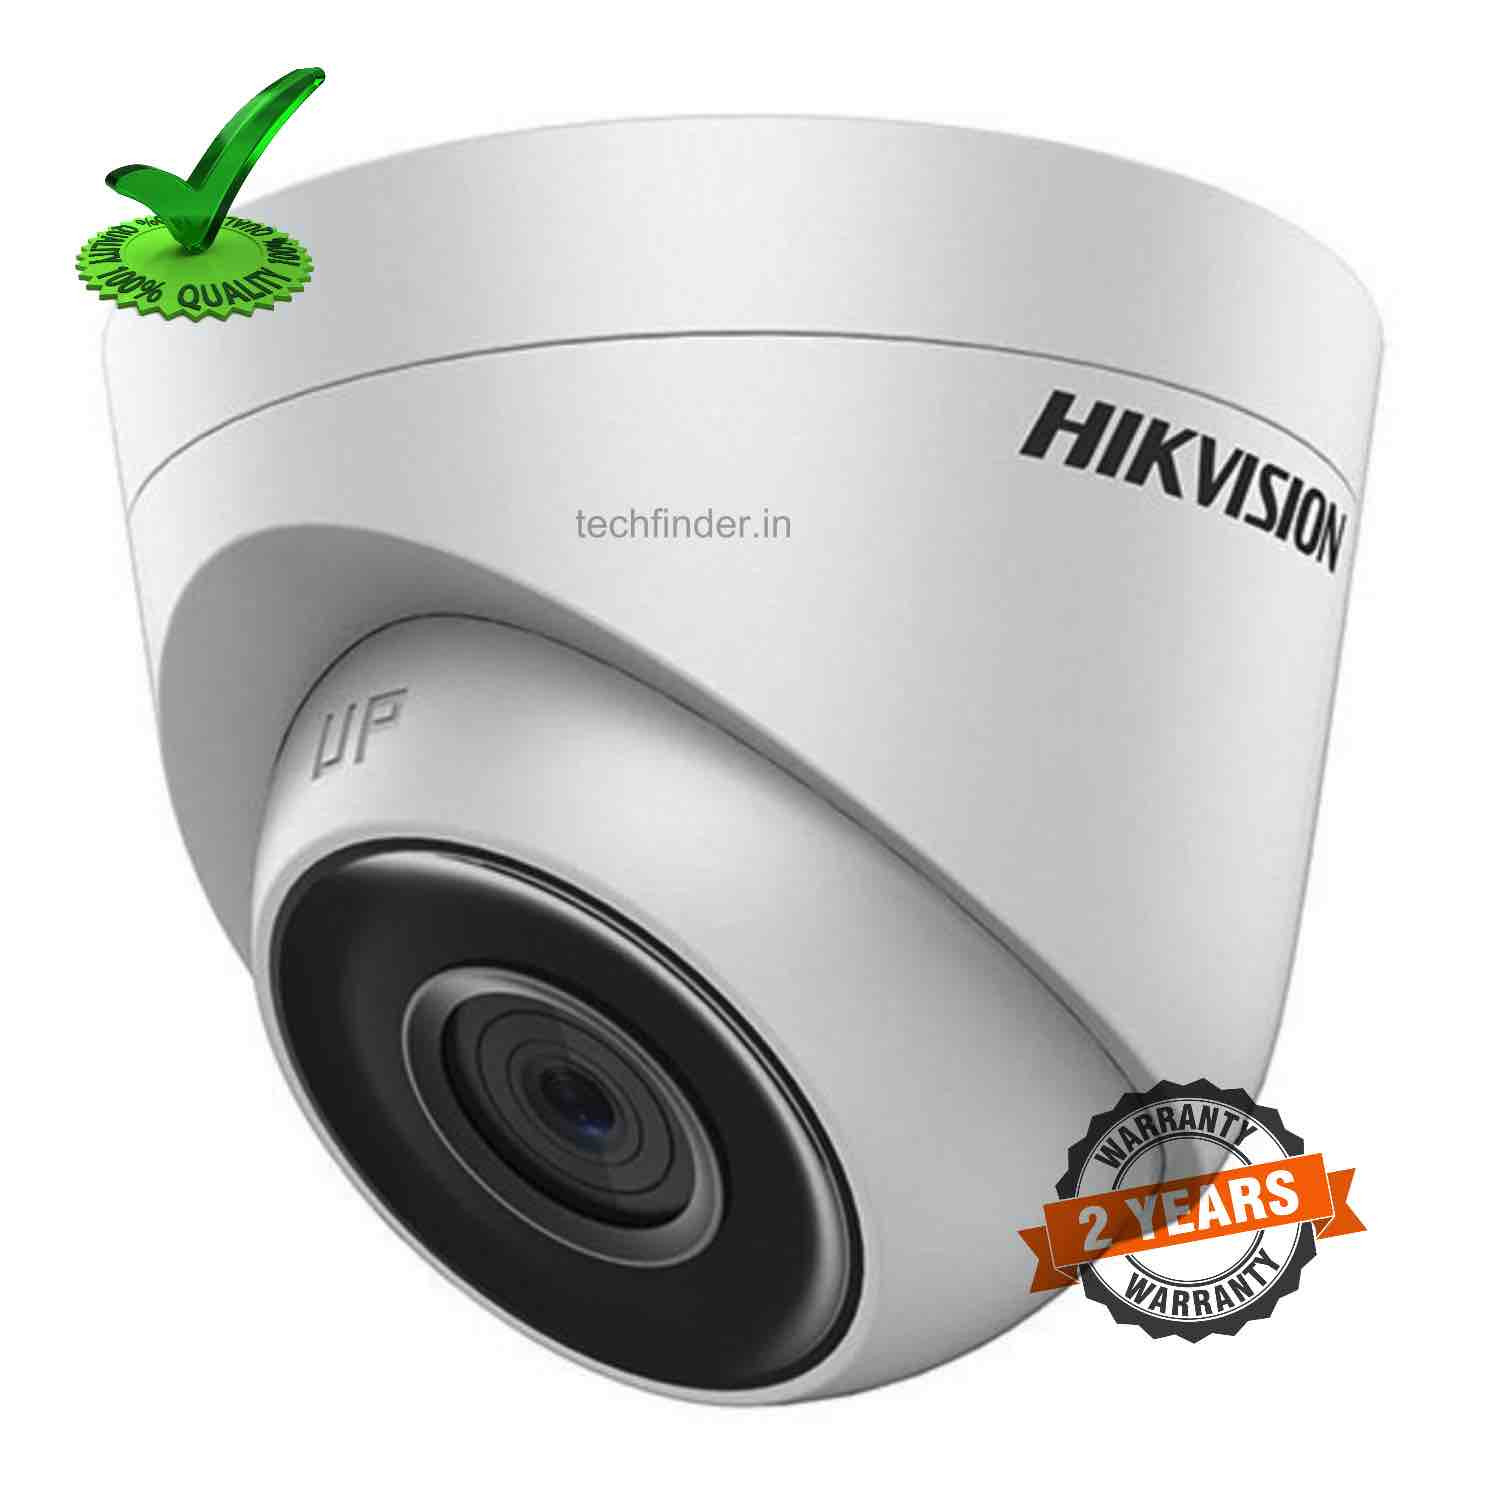 Hikvision DS-2CD1323G0-IU 2mp Ip Dome Camera